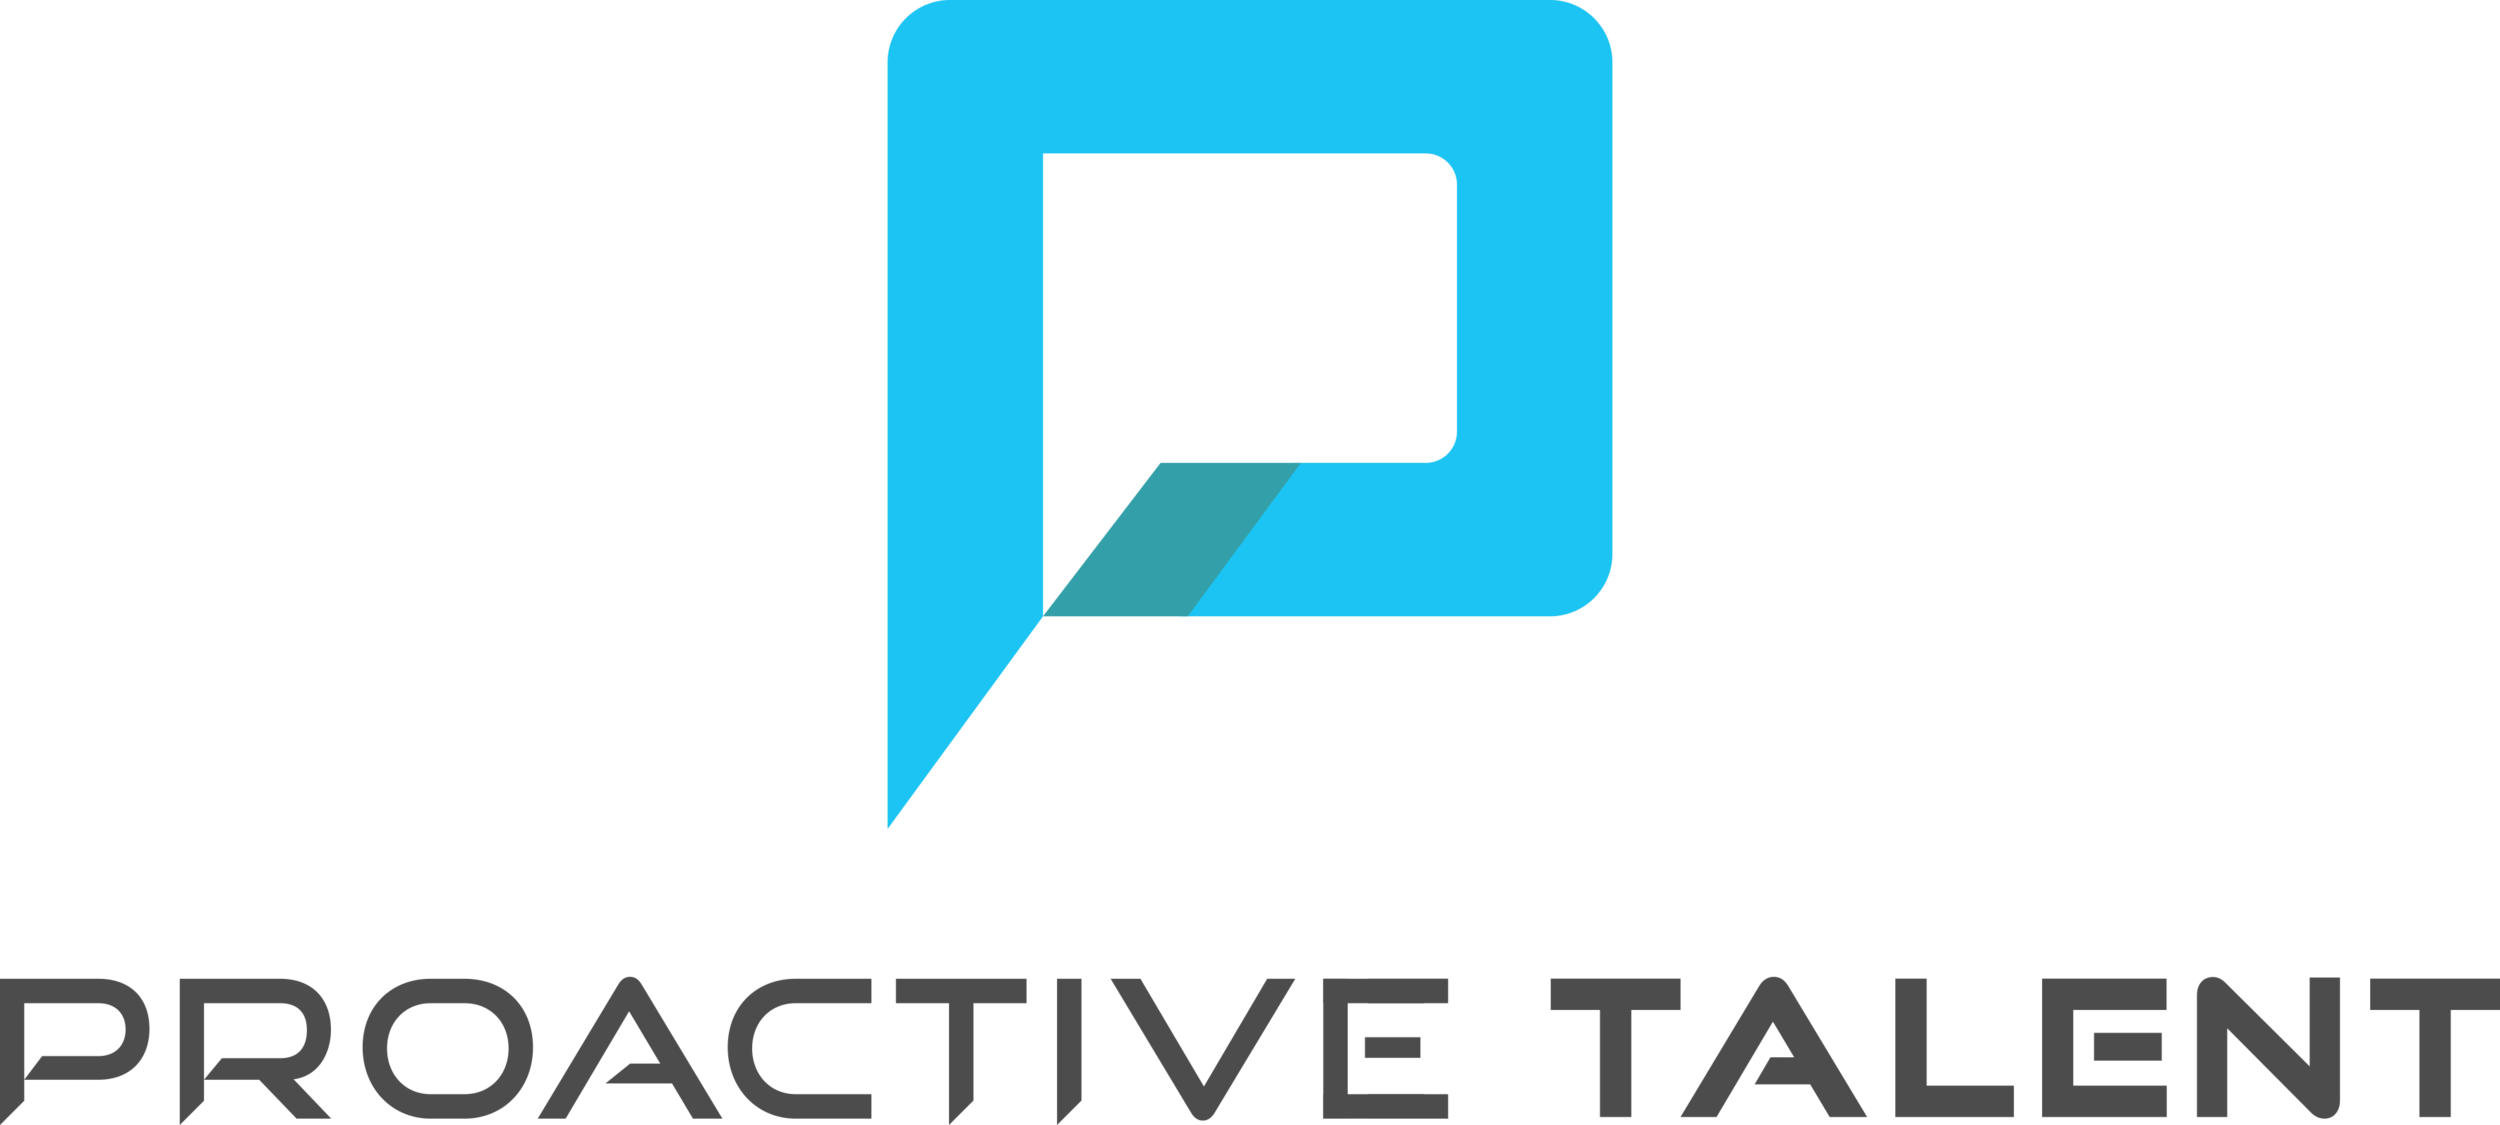 Proactive Talent PNG.png